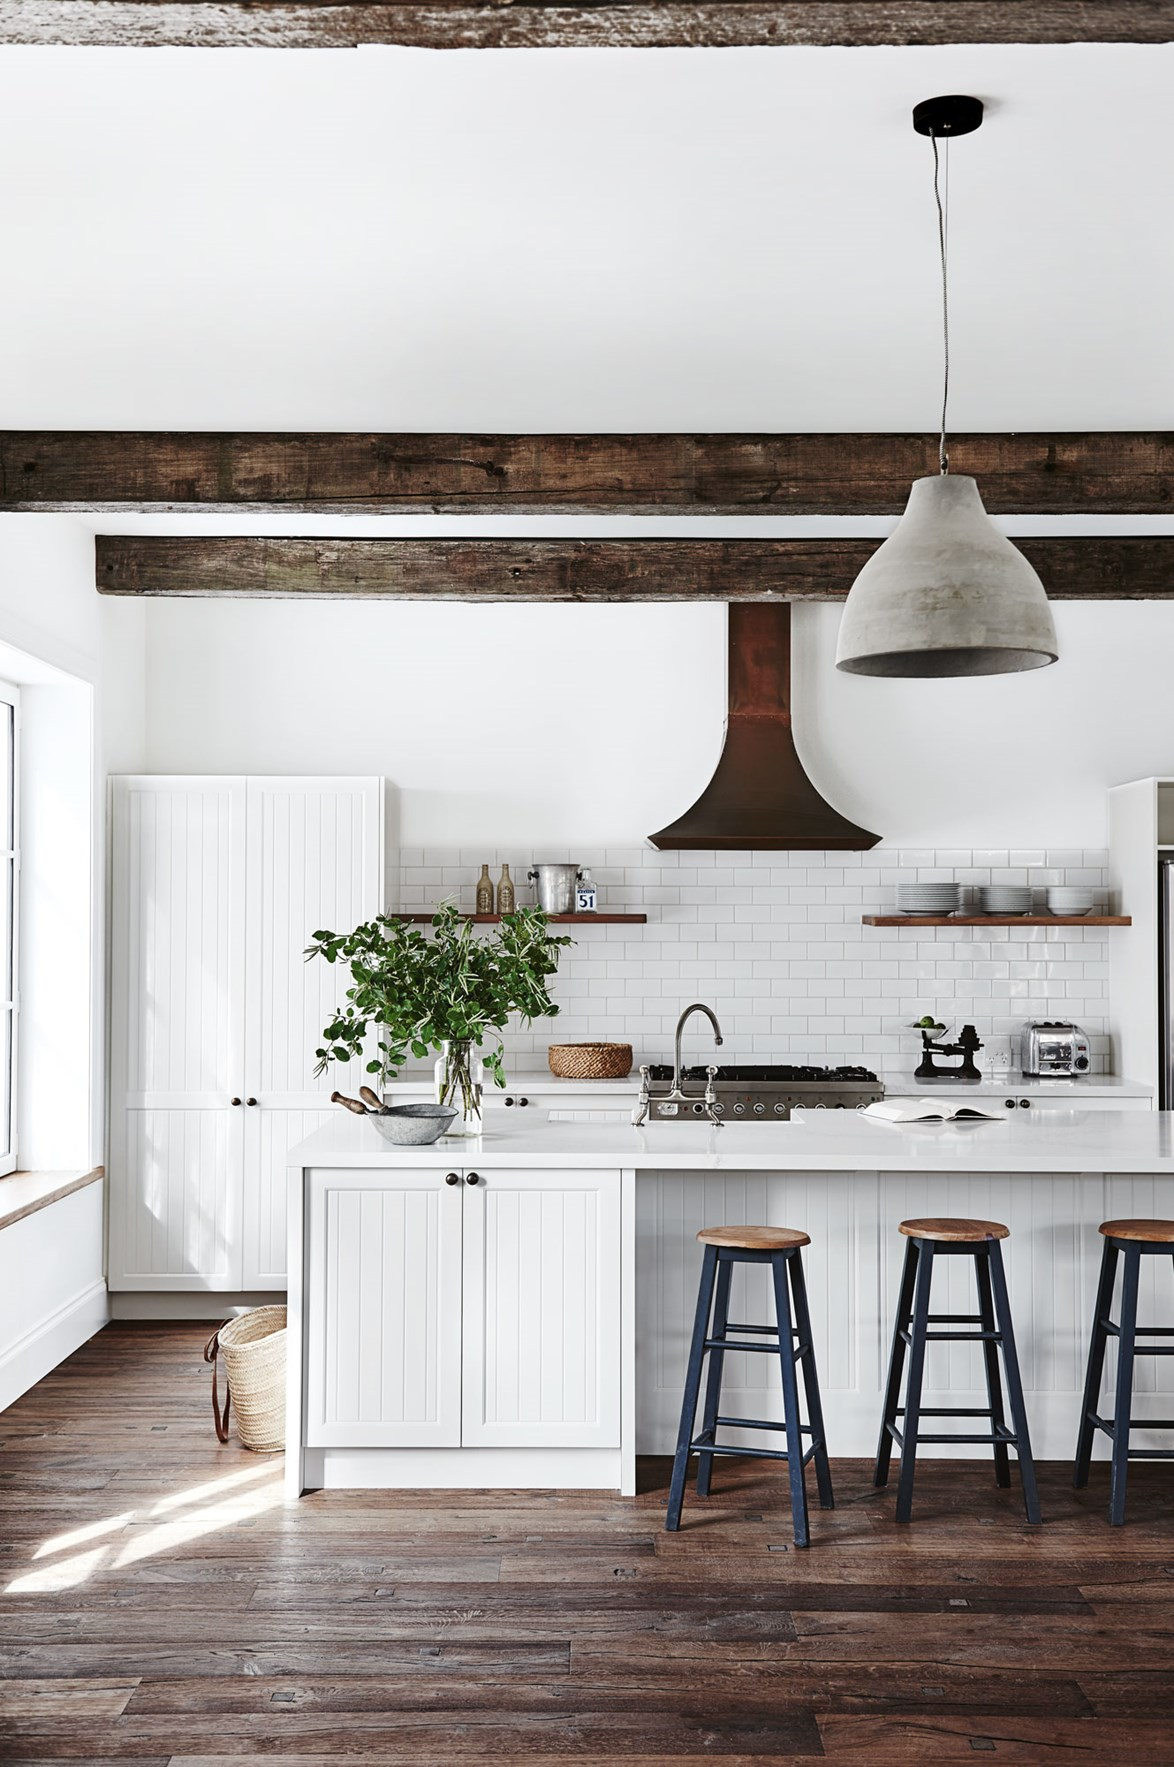 The kitchen features a copper range hood salvaged from a warehouse demolition.